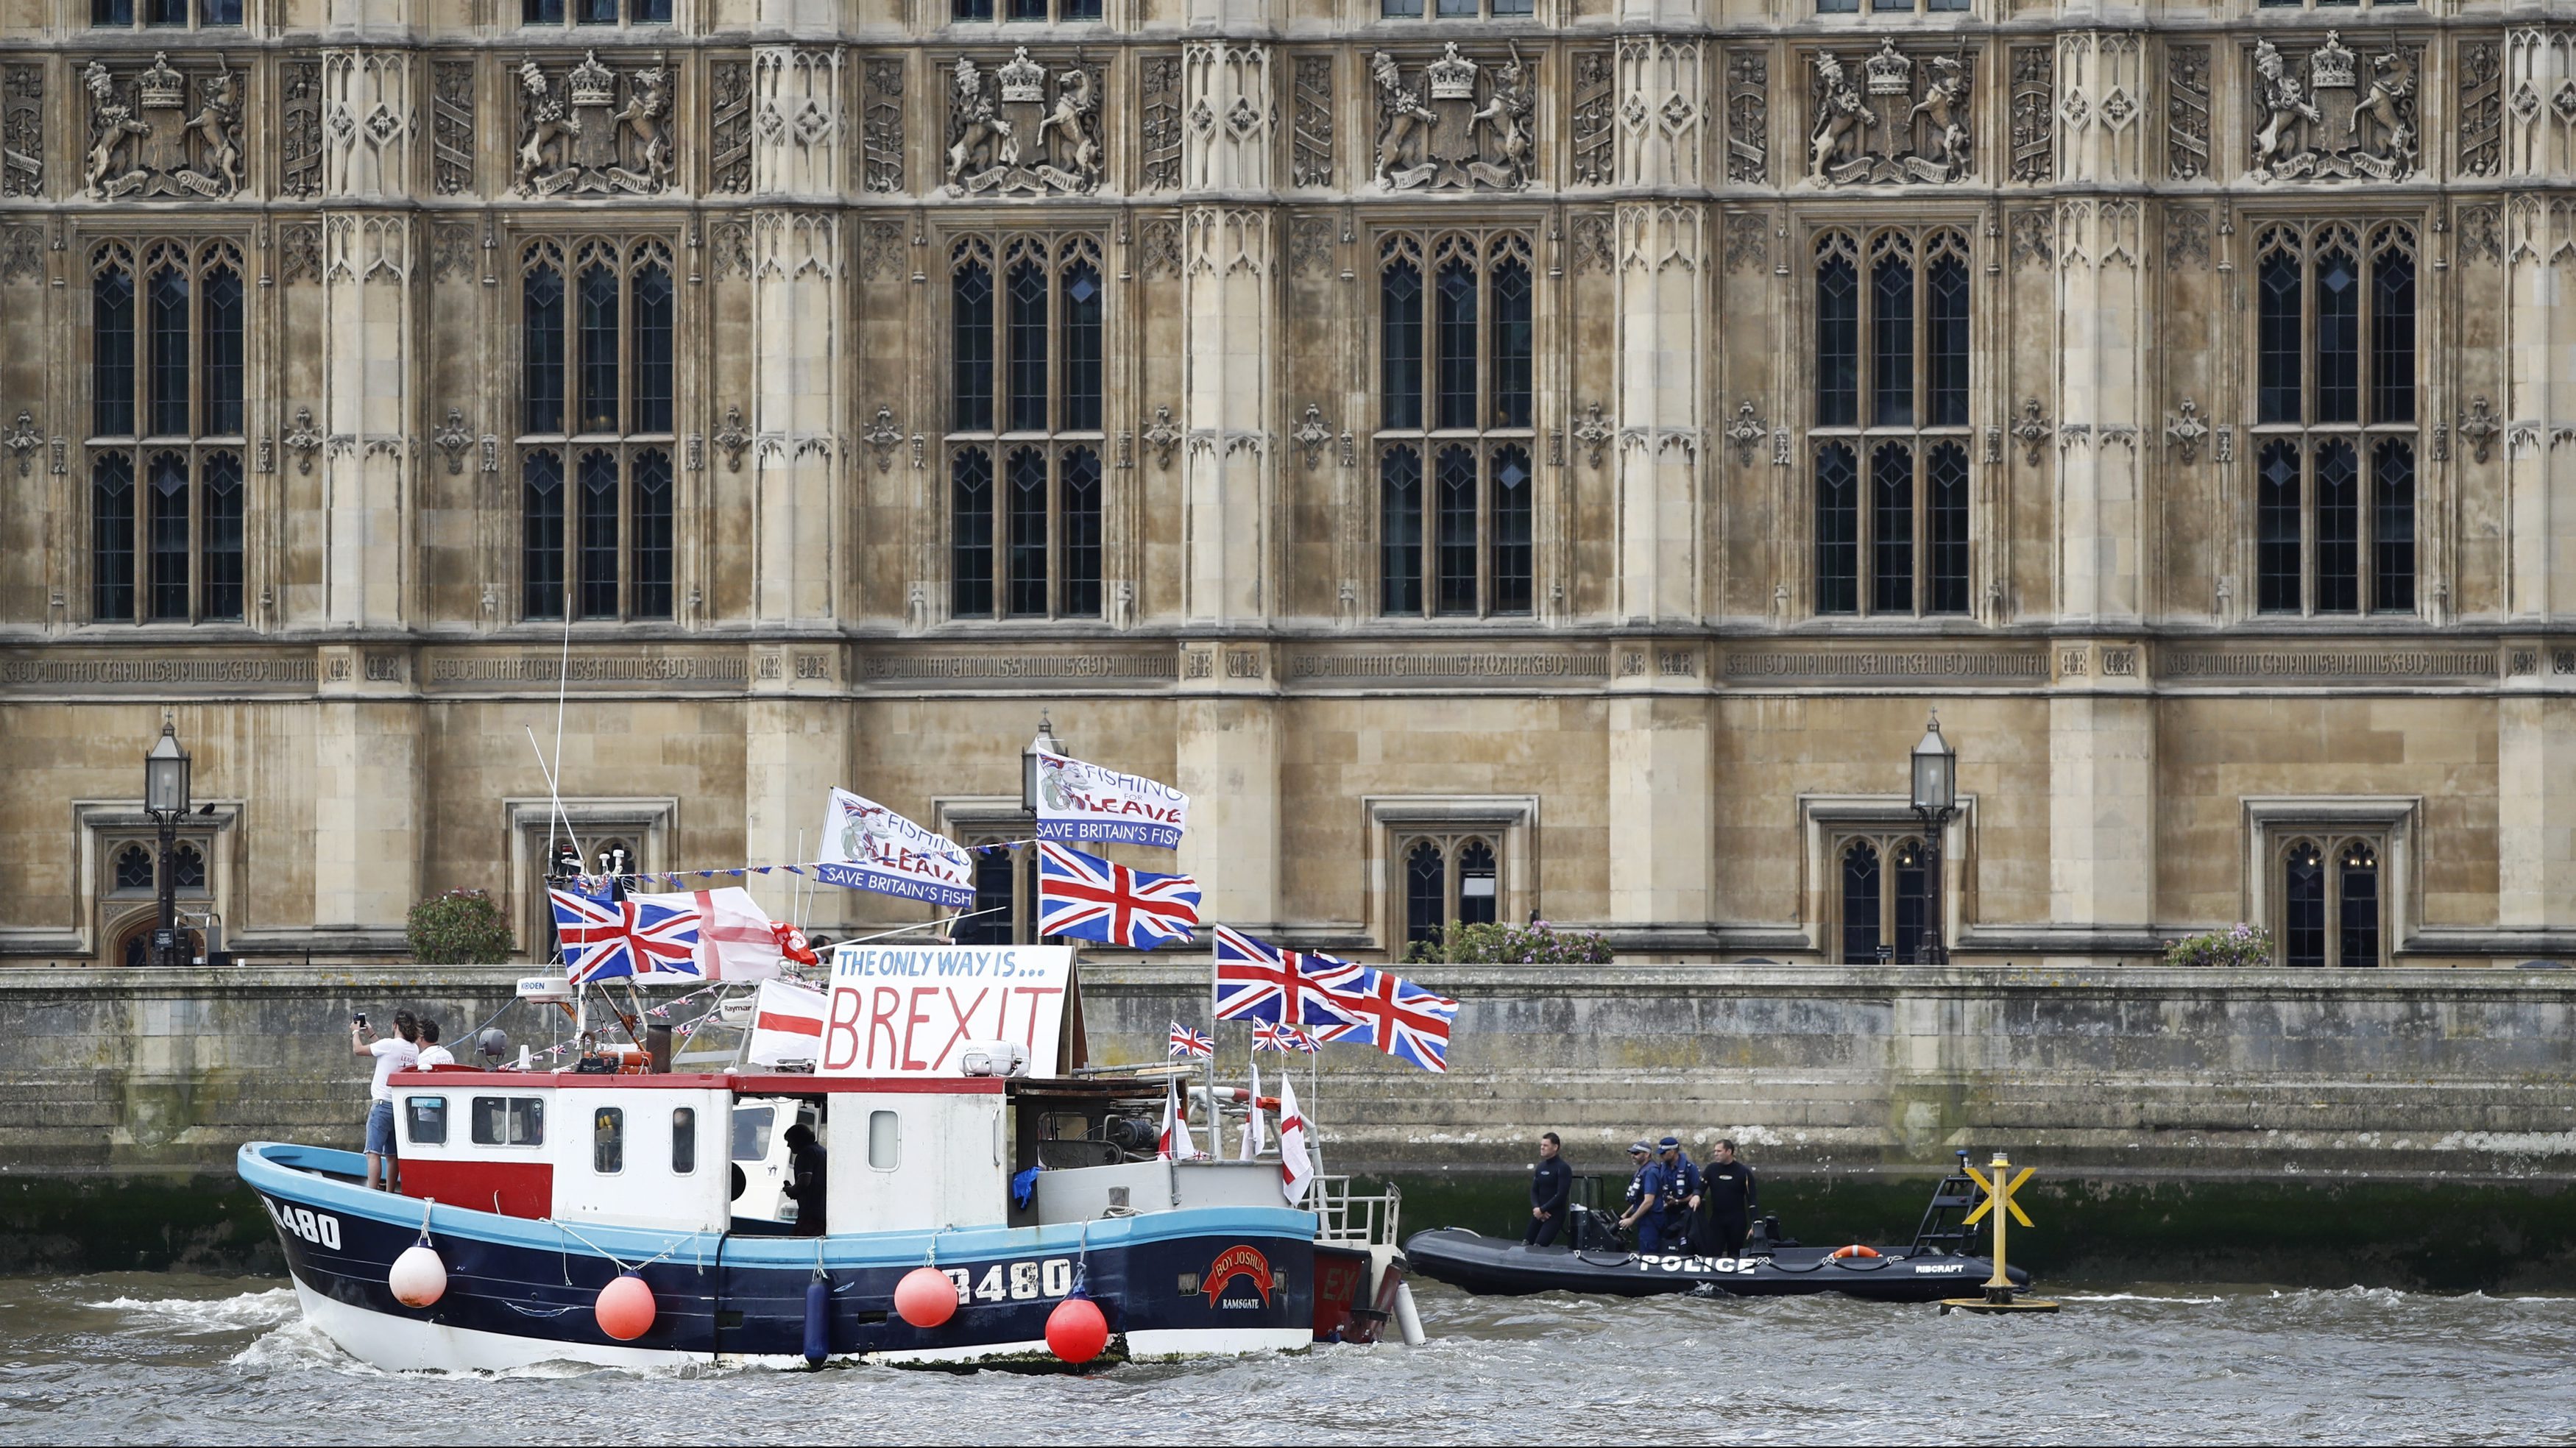 Part of a flotilla of fishing vessels campaigning to leave the European Union sails past Parliament on the river Thames in London, Britain June 15, 2016.  REUTERS/Stefan Wermuth    - RTX2GCM0